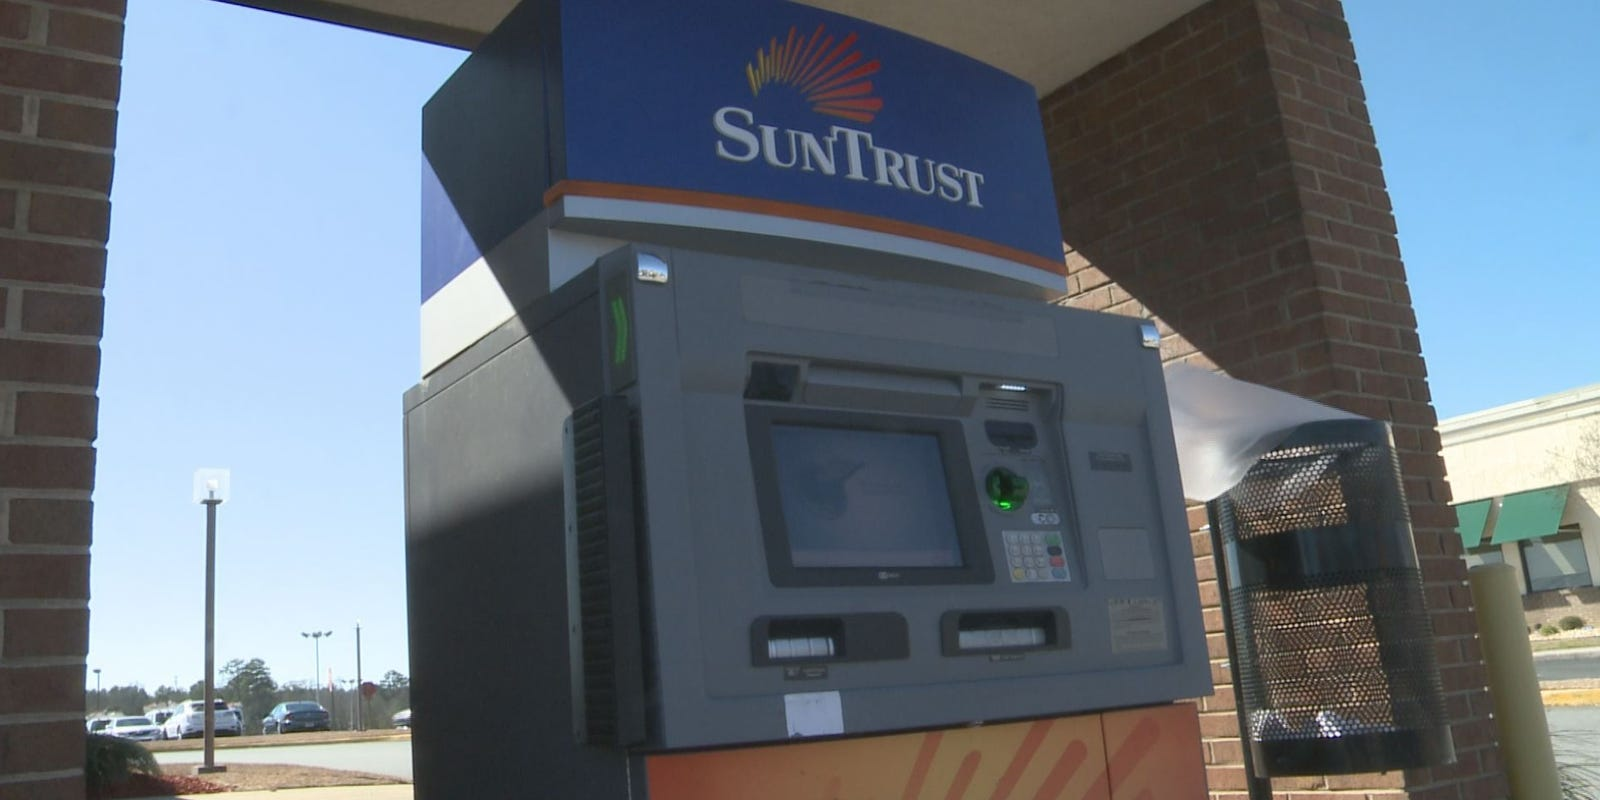 Thieves steal information through ATM card-skimming